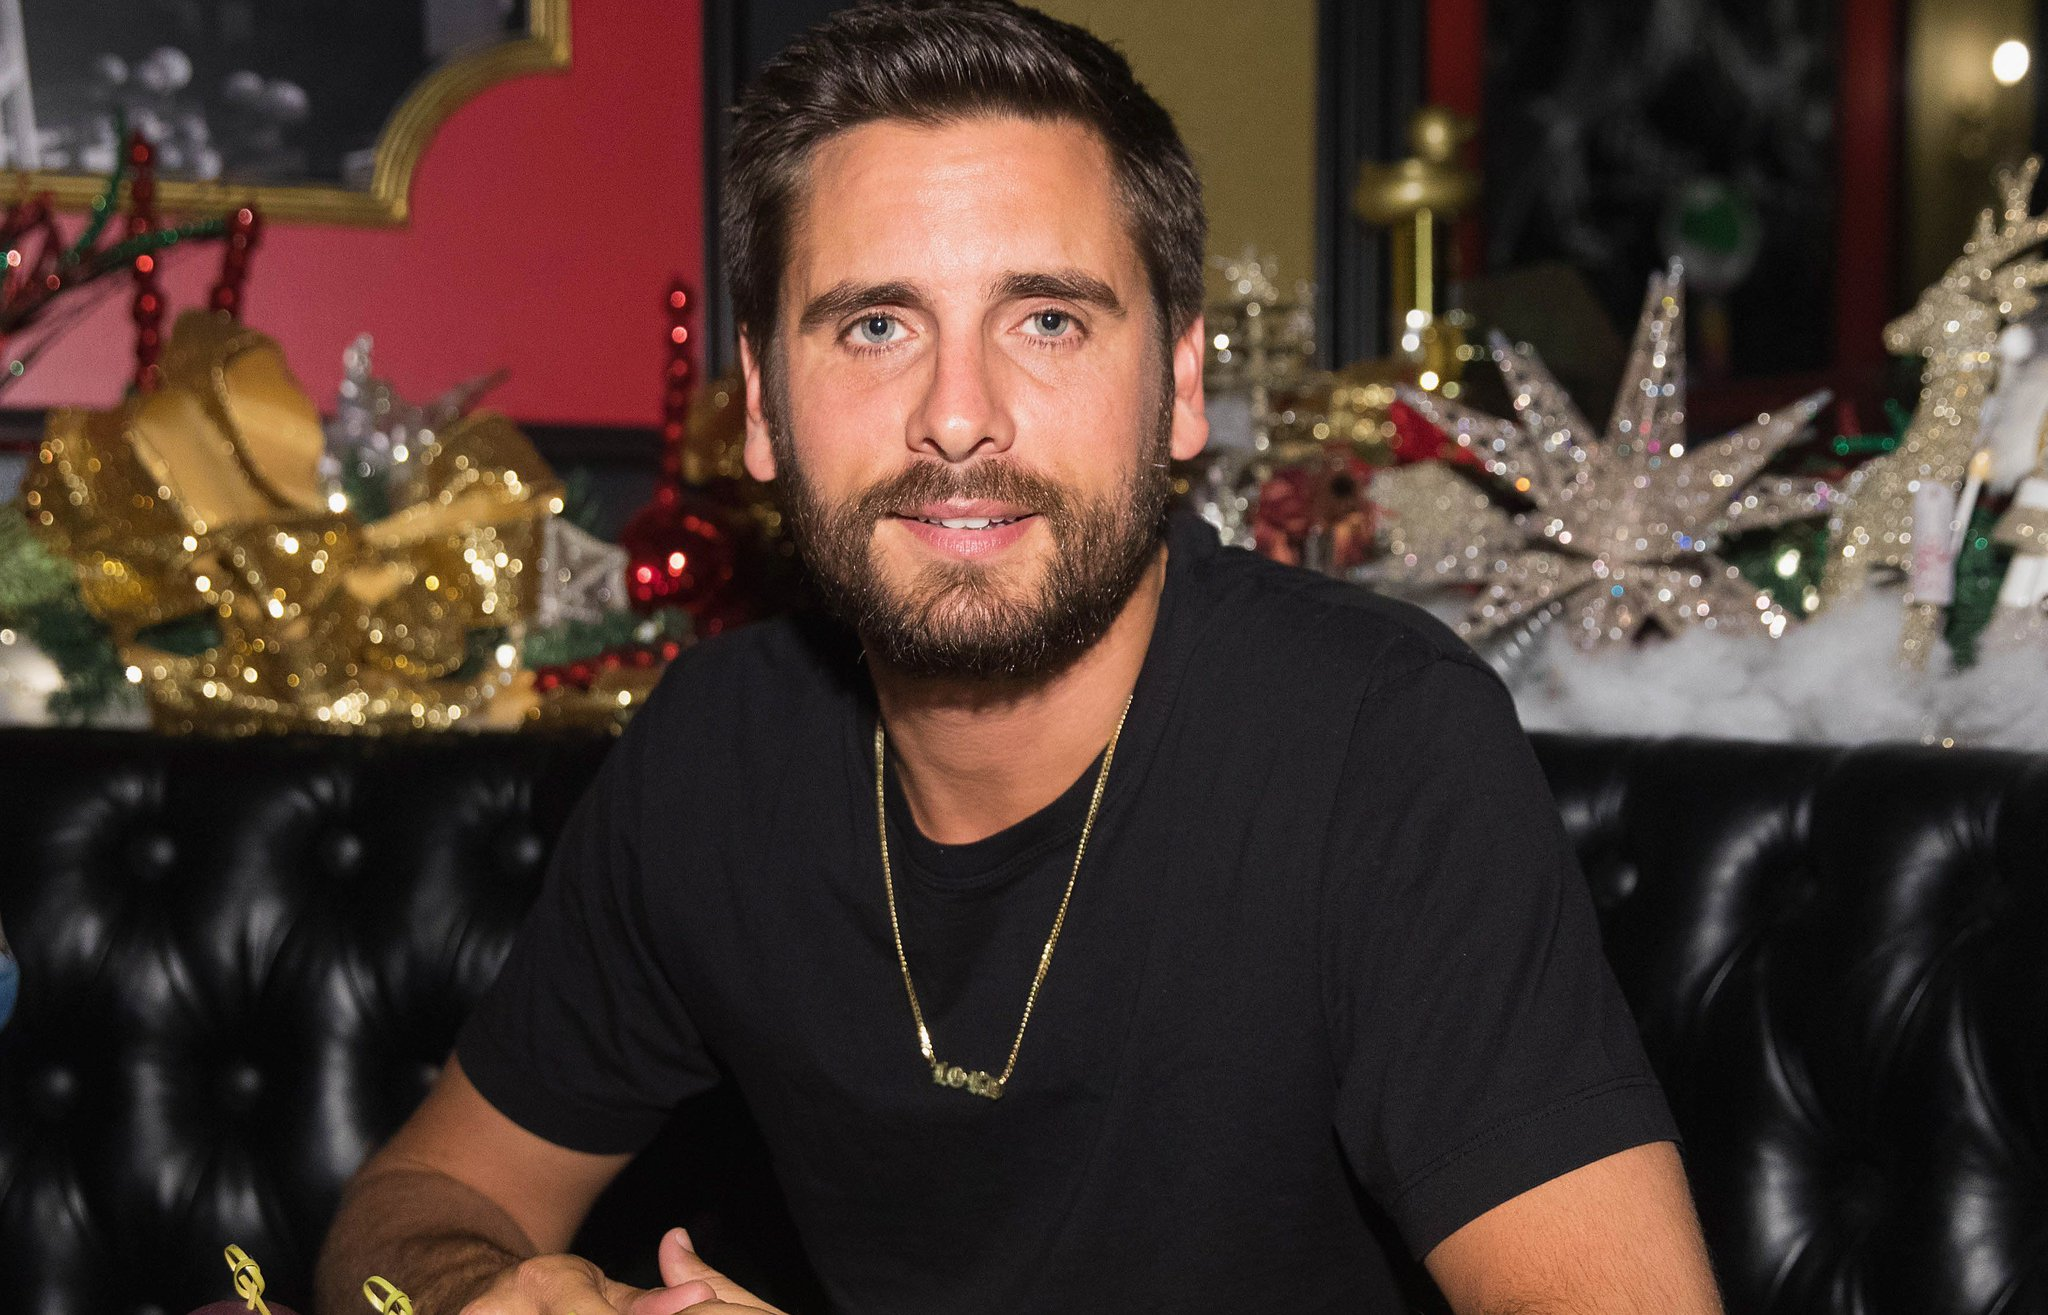 Did Scott Disick just low-key confirm Khloé Kardashian is pregnant? https://t.co/LXtvrt7bOi https://t.co/gNN7VUqAwn